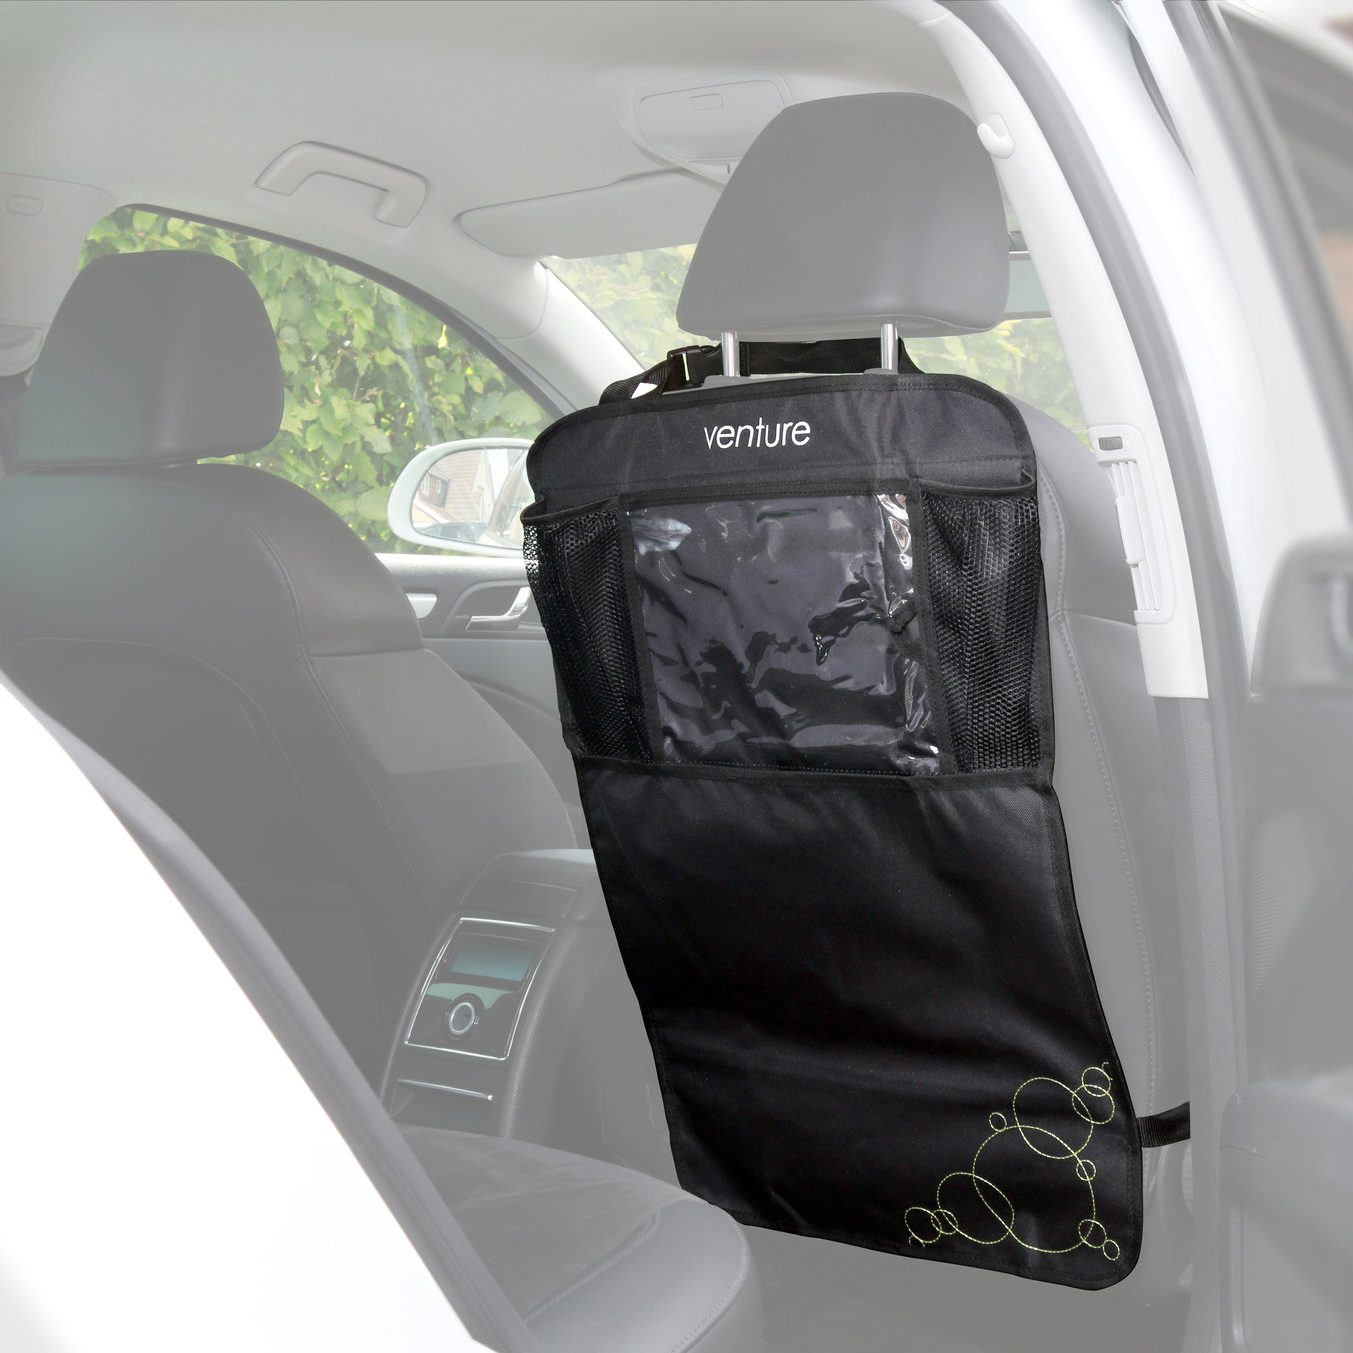 Venture car seat kick mats have a handy viewing window for Ipads or other tablets